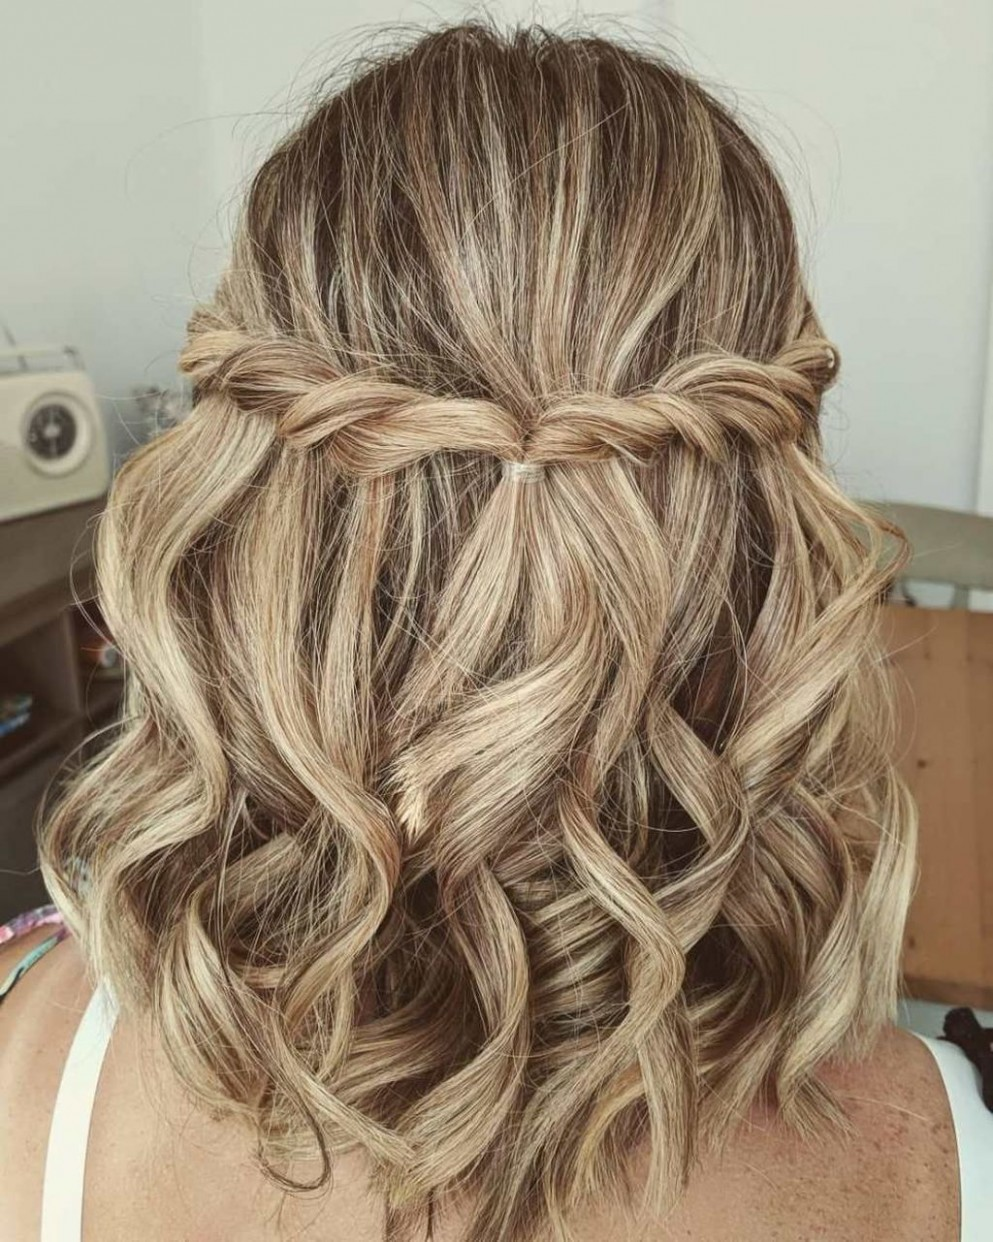 12 Newest Short Formal Hairstyles Ideas For Women Updos For Short Prom Hairstyles